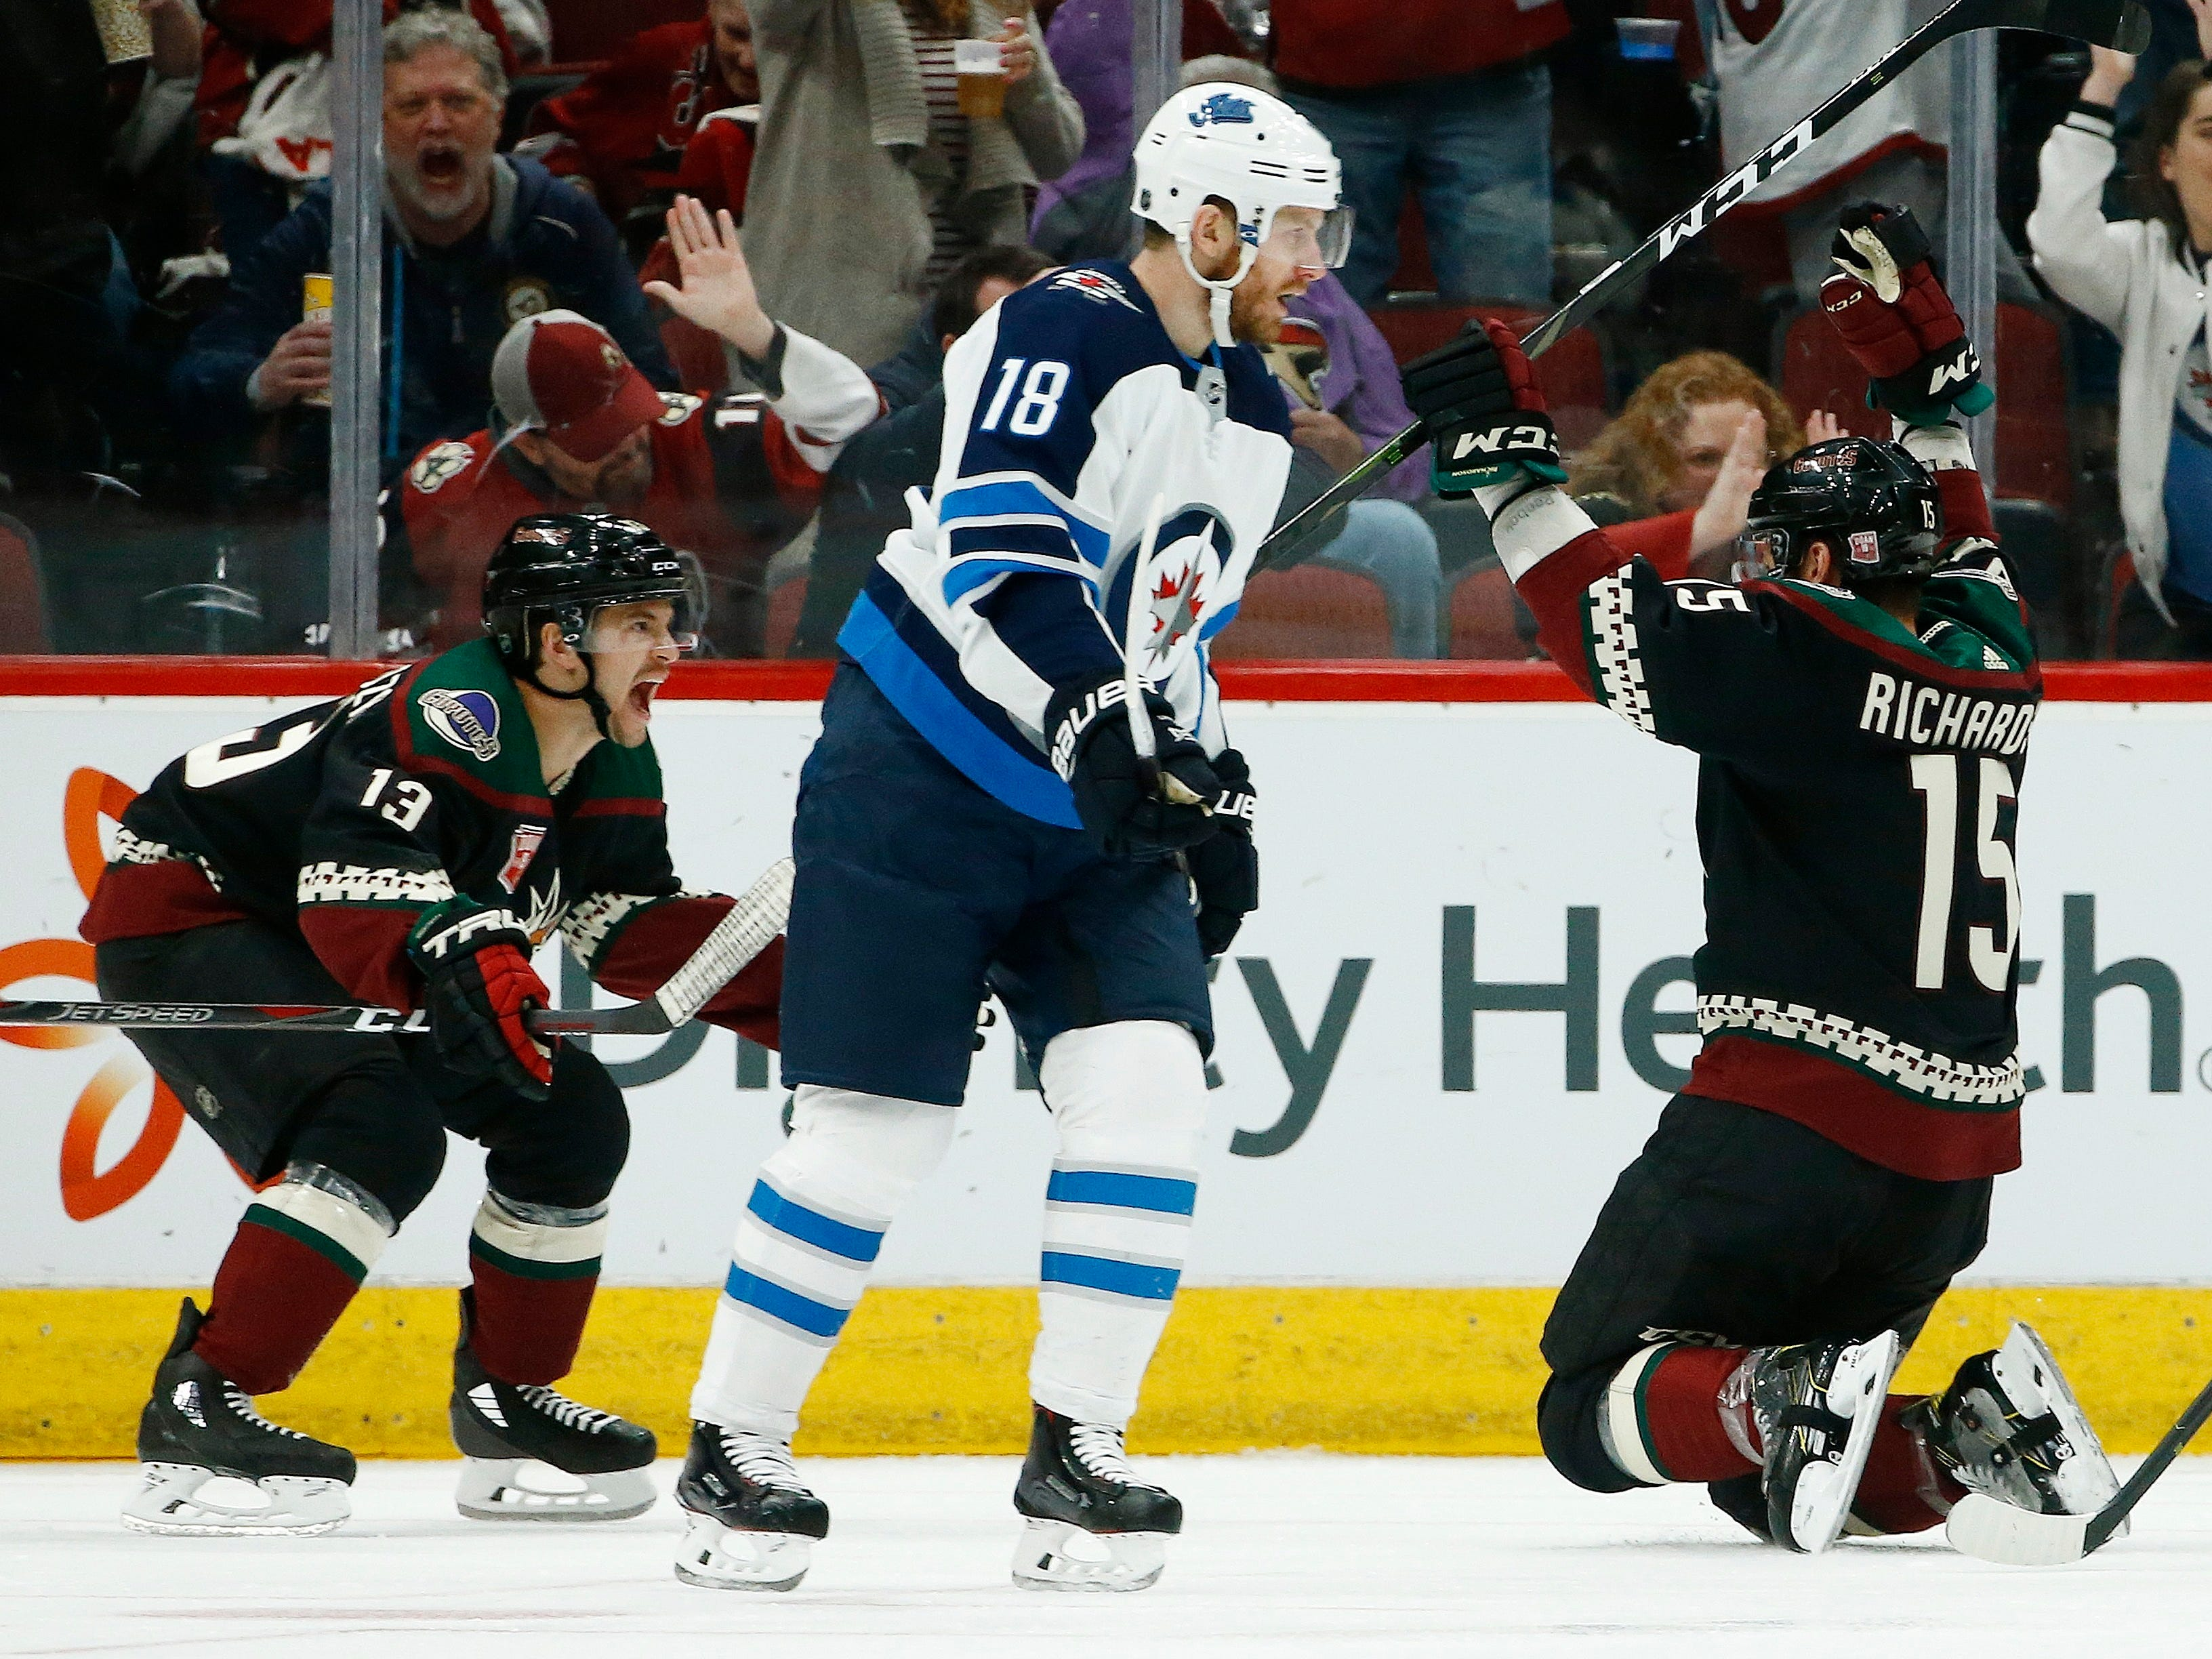 Arizona Coyotes center Brad Richardson (15) celebrates his goal against the Winnipeg Jets with Coyotes' Vinnie Hinostroza (13) as Jets center Bryan Little (18) skates past during the first period of an NHL hockey game Sunday, Feb. 24, 2019, in Glendale, Ariz.